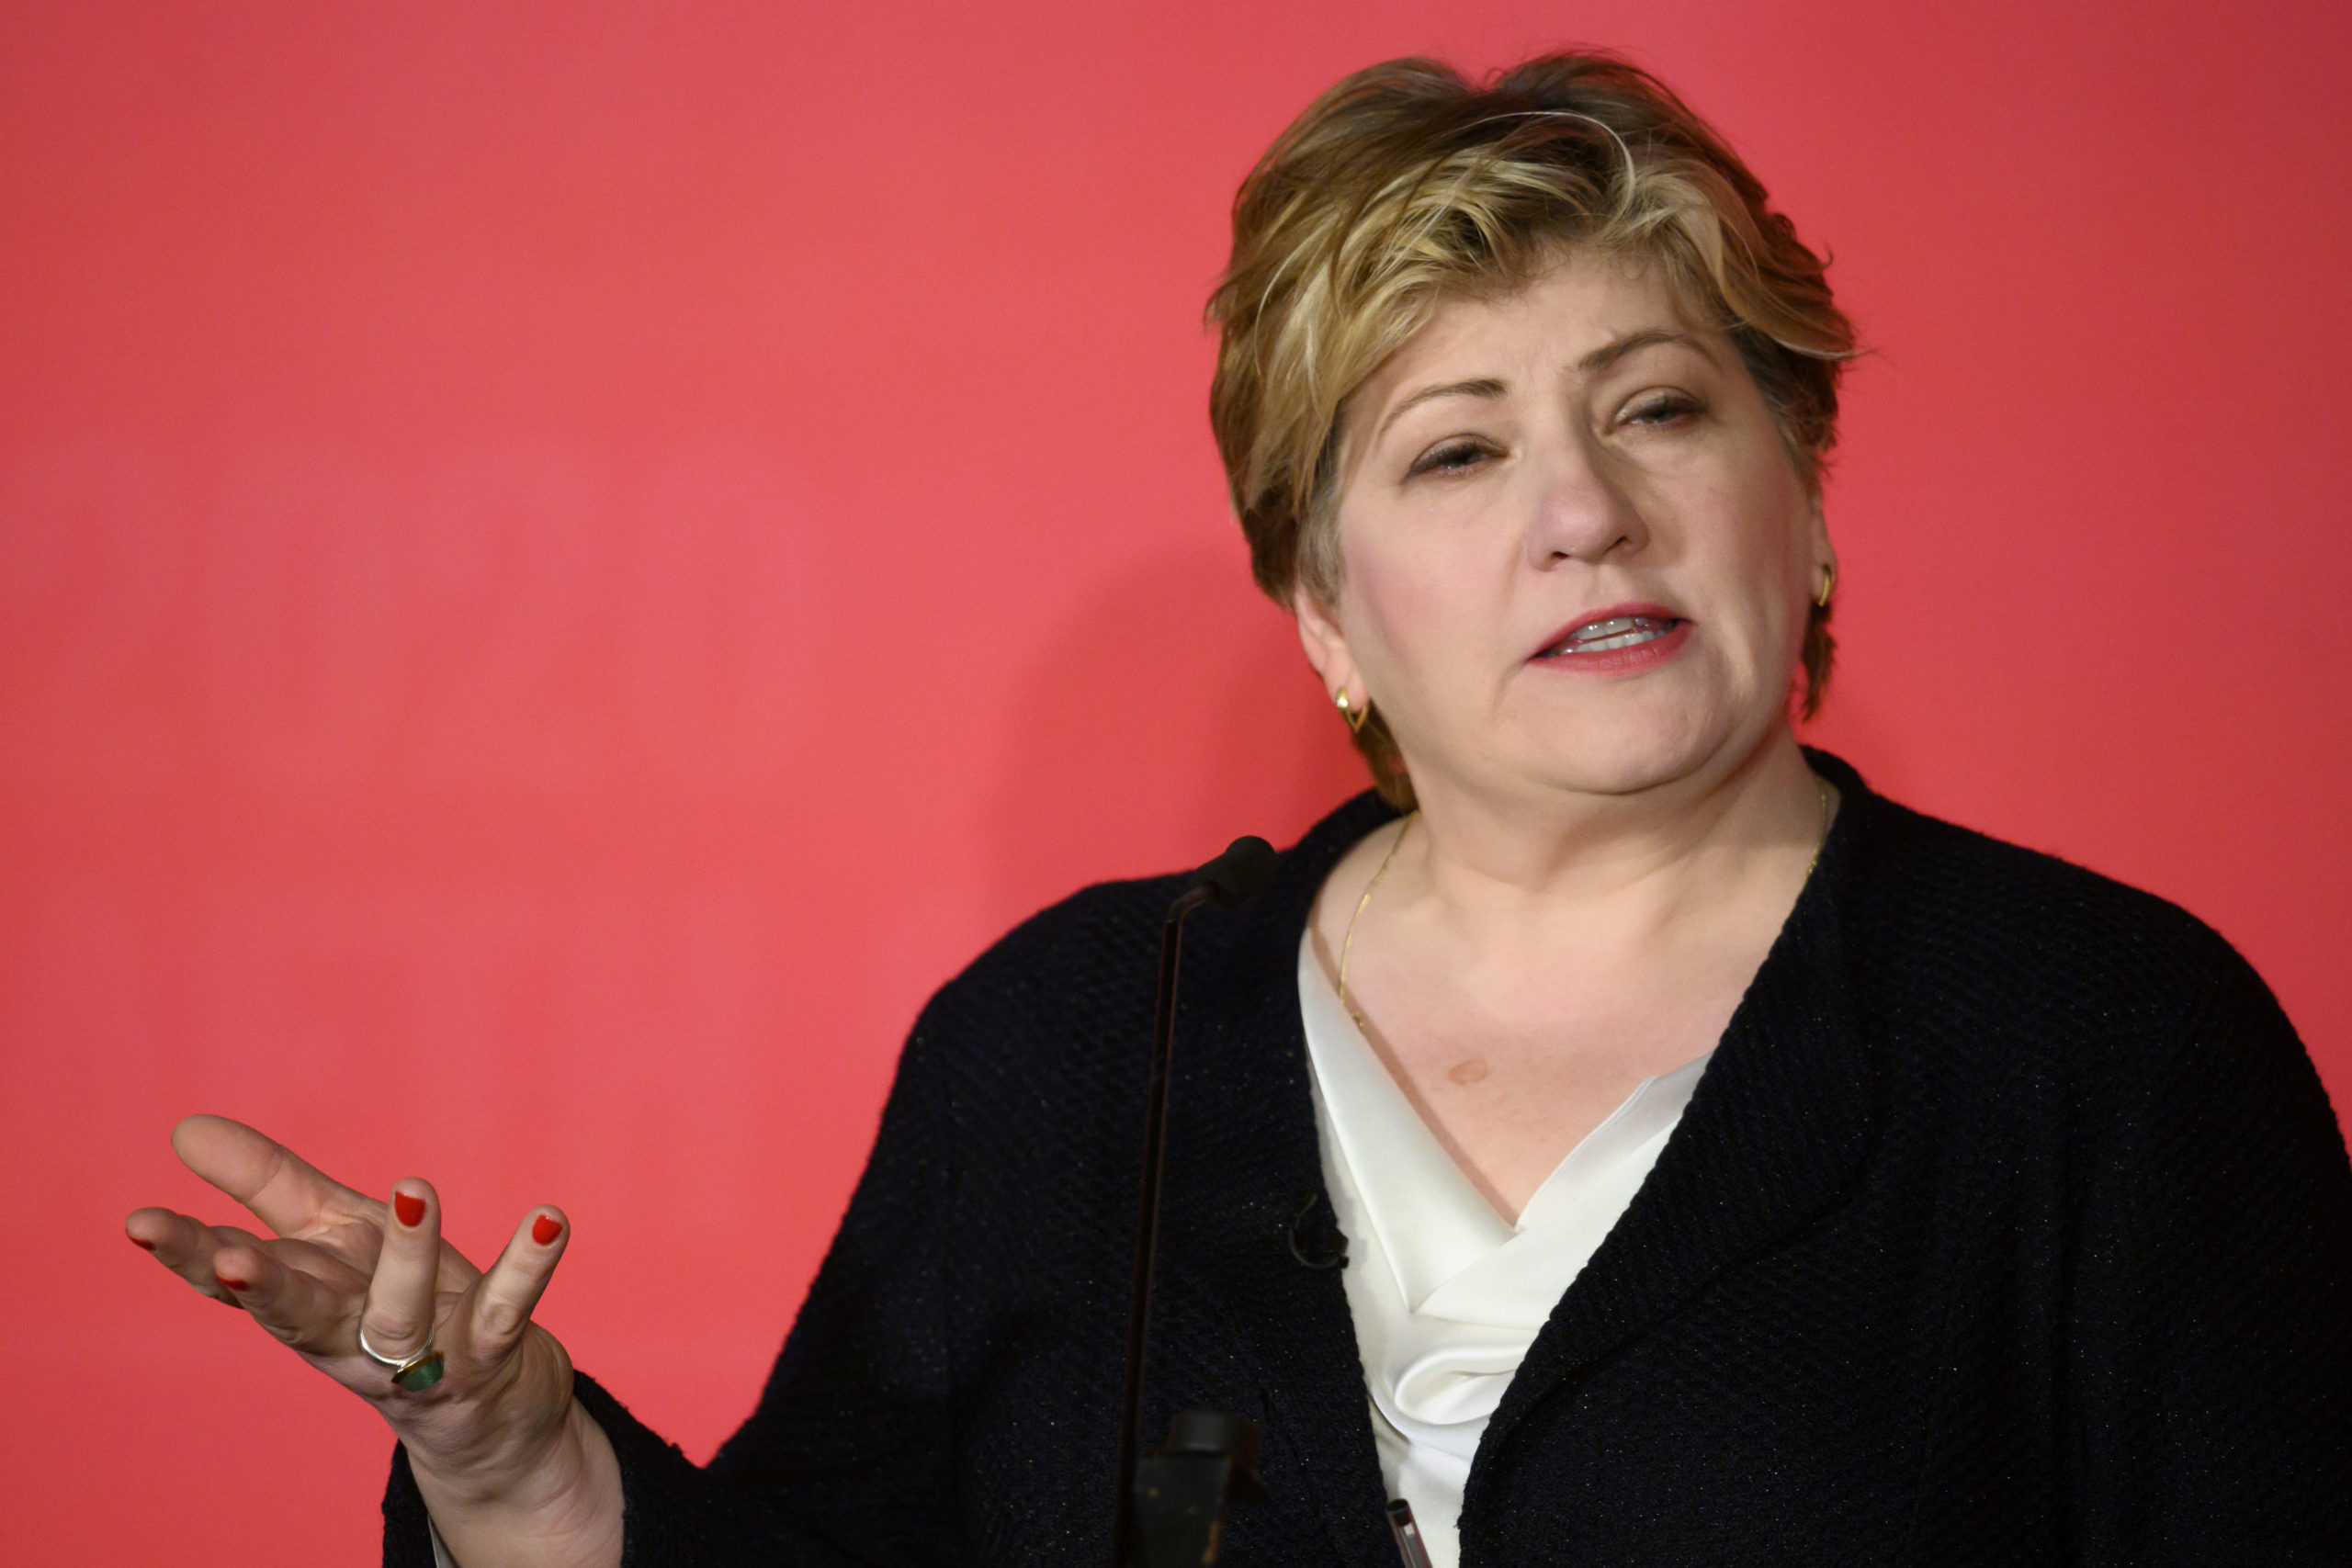 Labour's Emily Thornberry shuts down 'do only women have cervixes' question